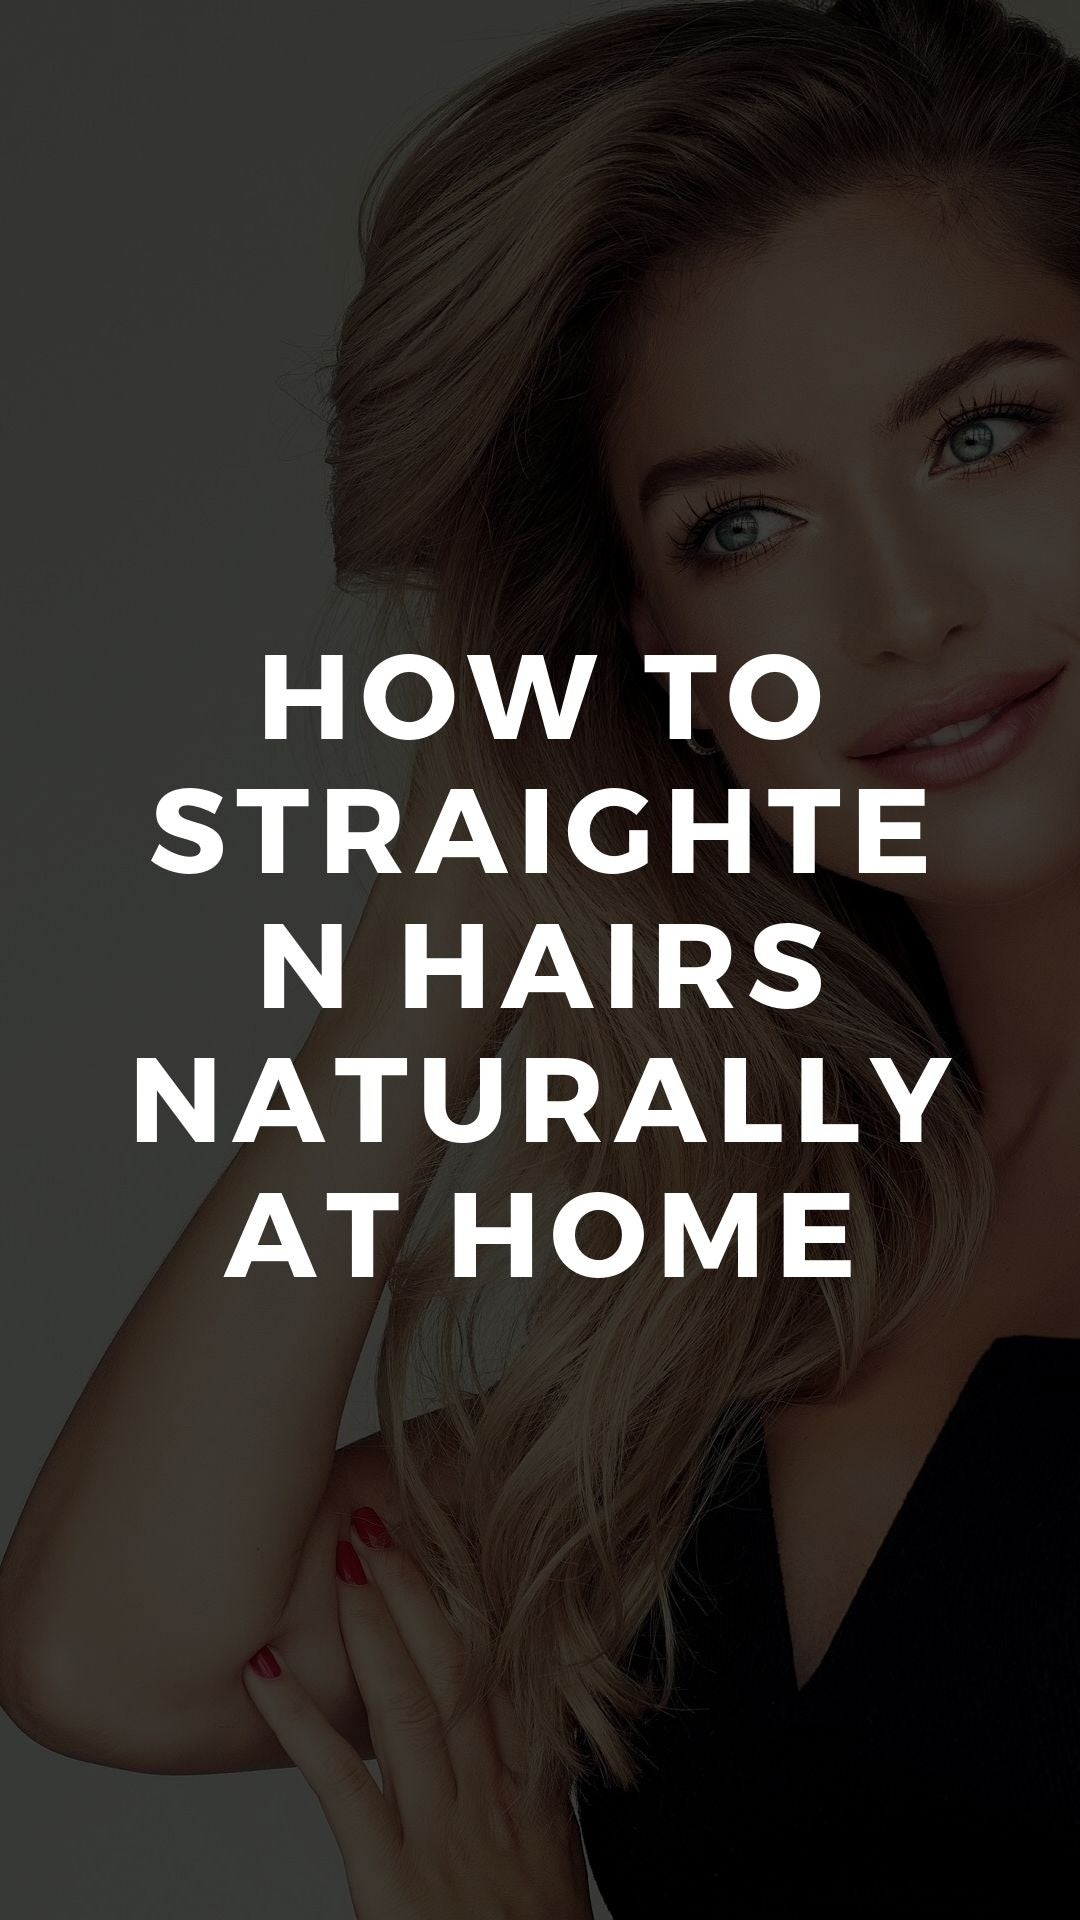 How to Straighten Hairs Naturally at Home